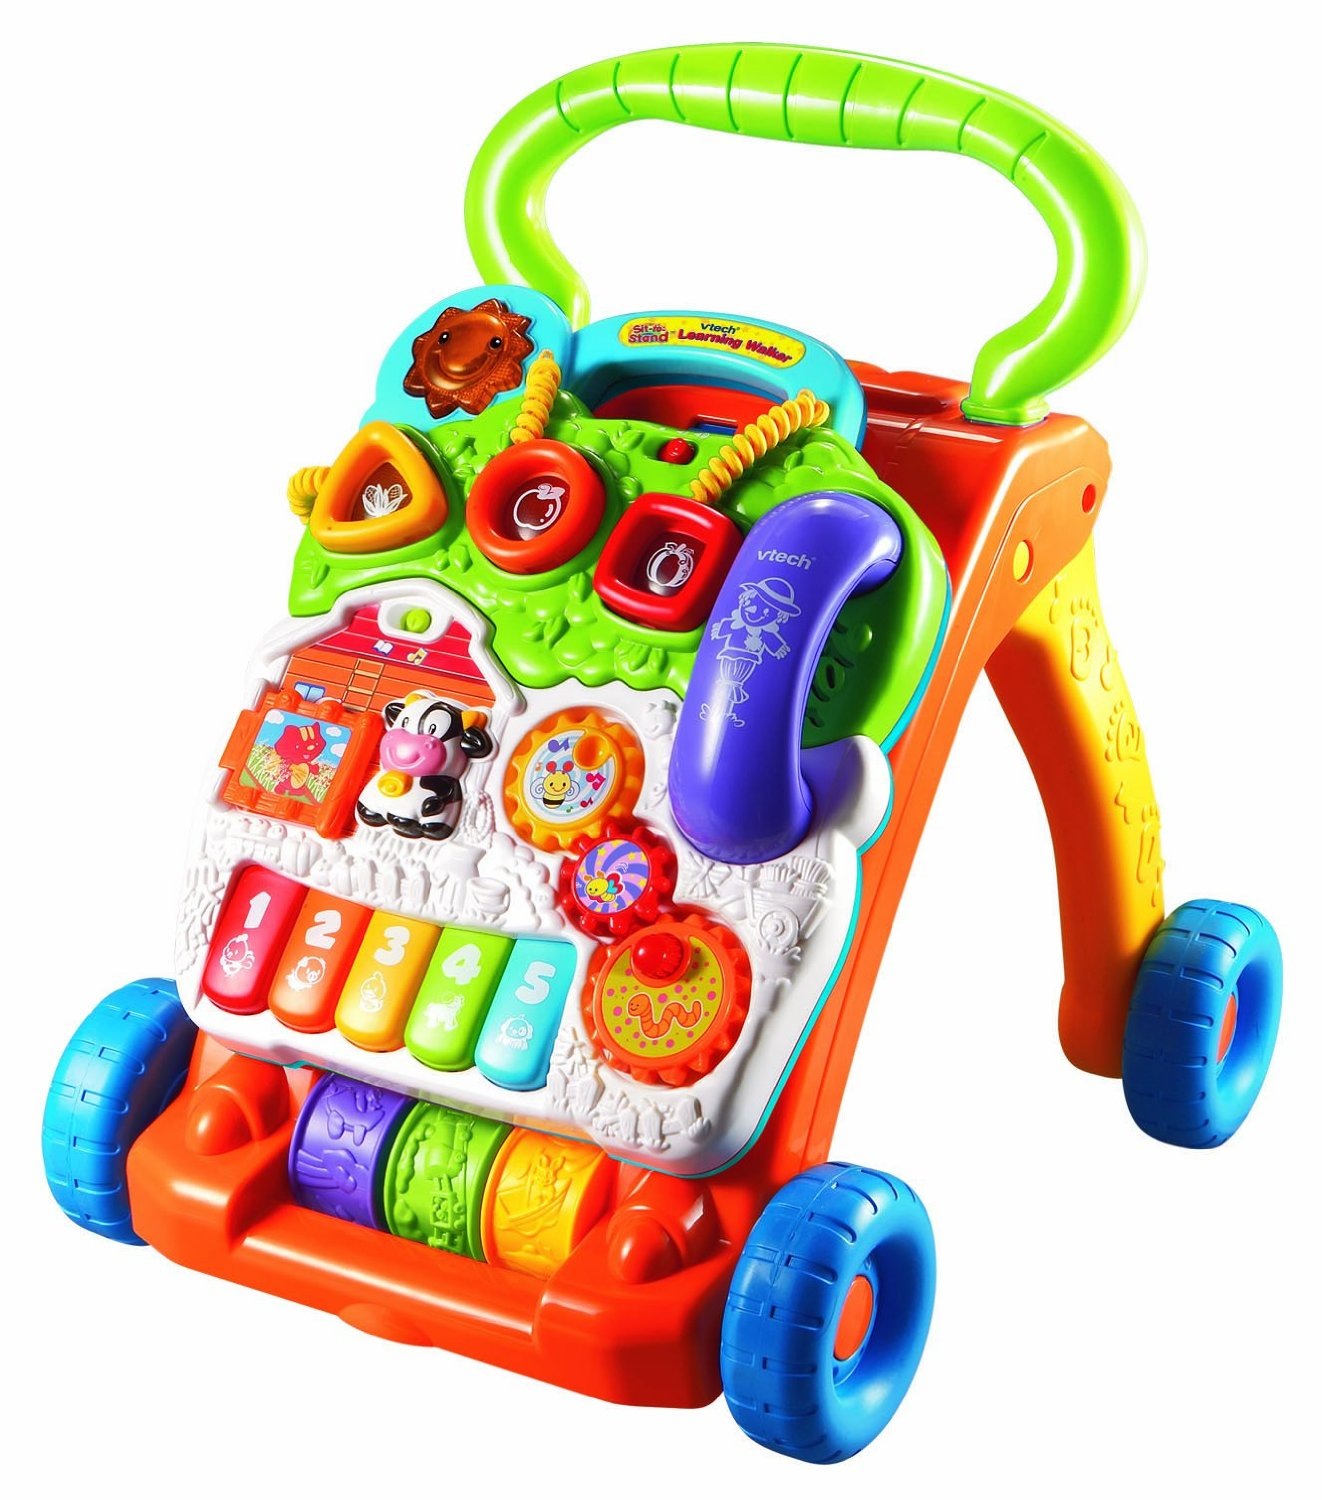 Push Toys For Toddlers : Best push toy walkers the top models